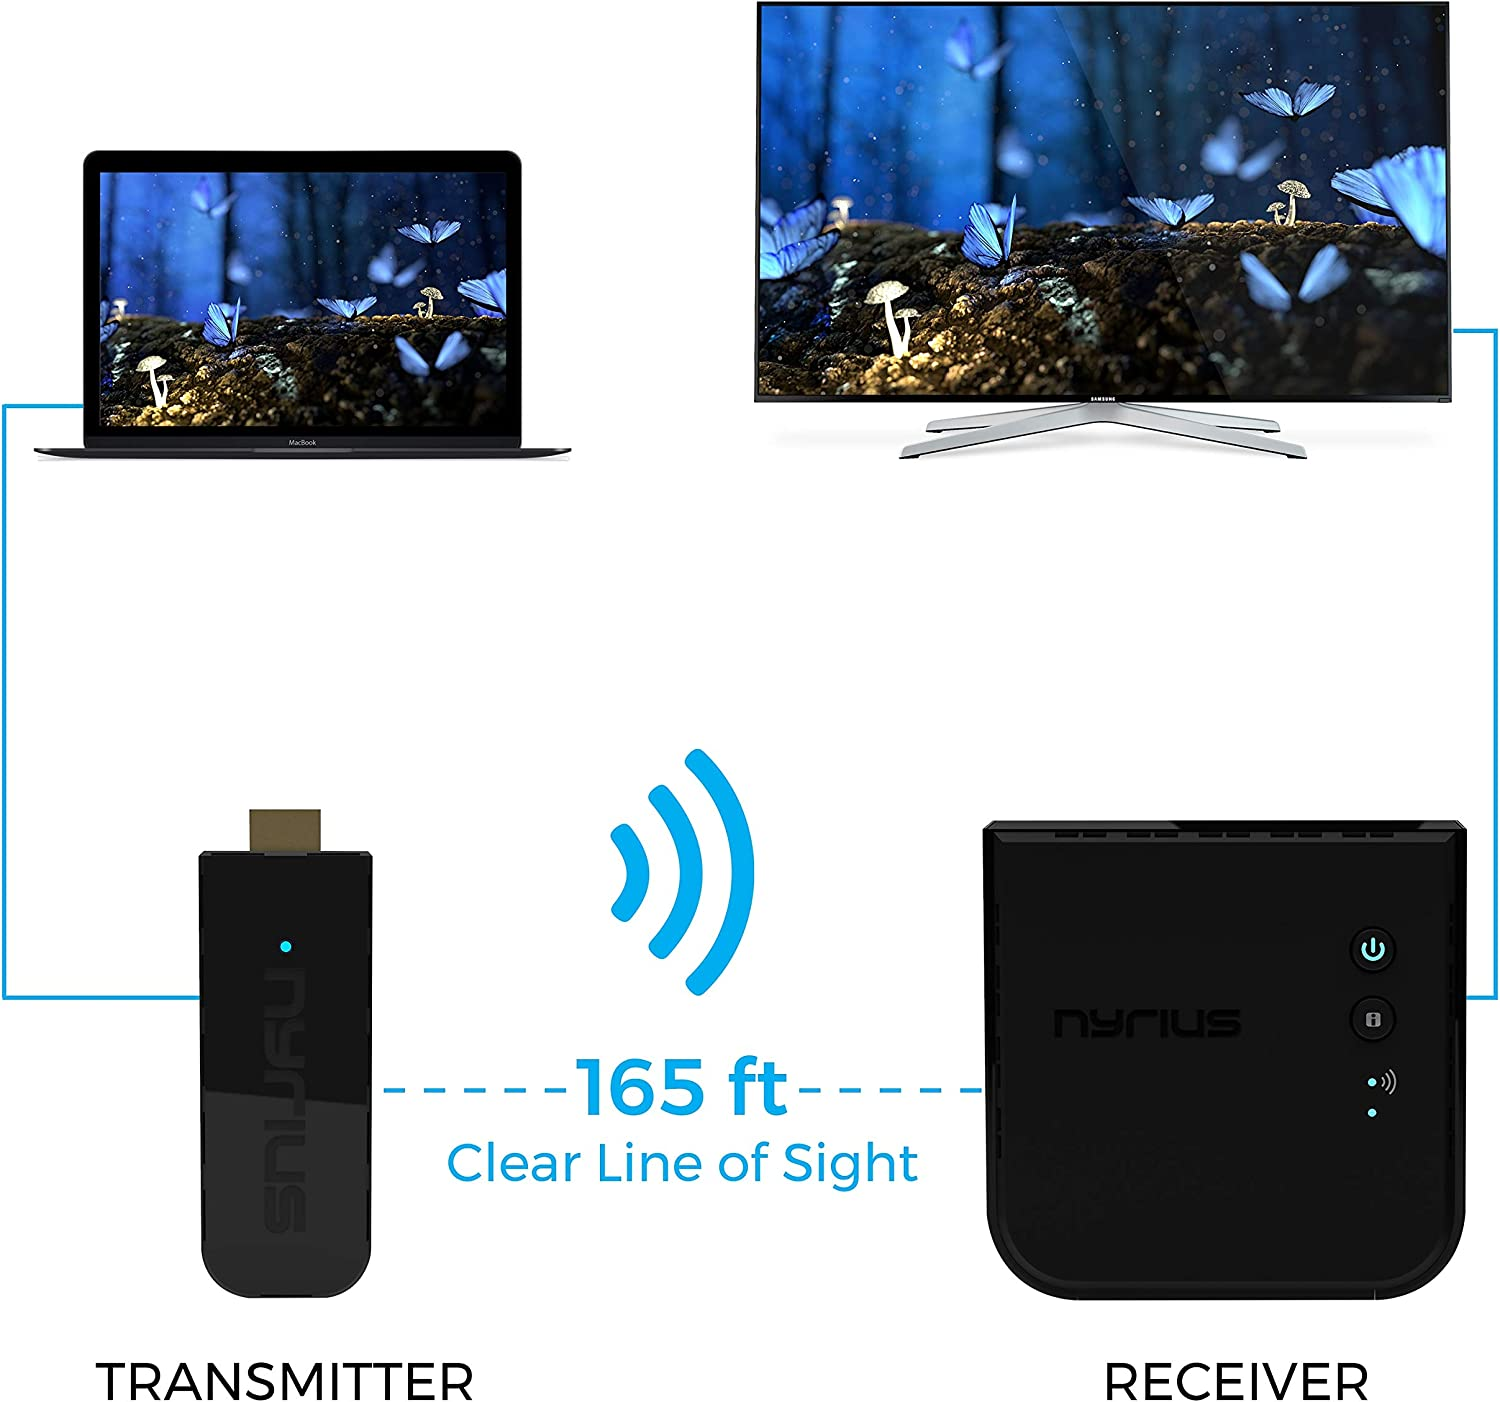 Nyrius Aries Pro+ Wireless HDMI Video Transmitter & Receiver to Stream 1080p Video up to 165ft from Laptop, PC, Cable Box, Game Console, DSLR Camera with Bonus HDMI Cable (NPCS650)